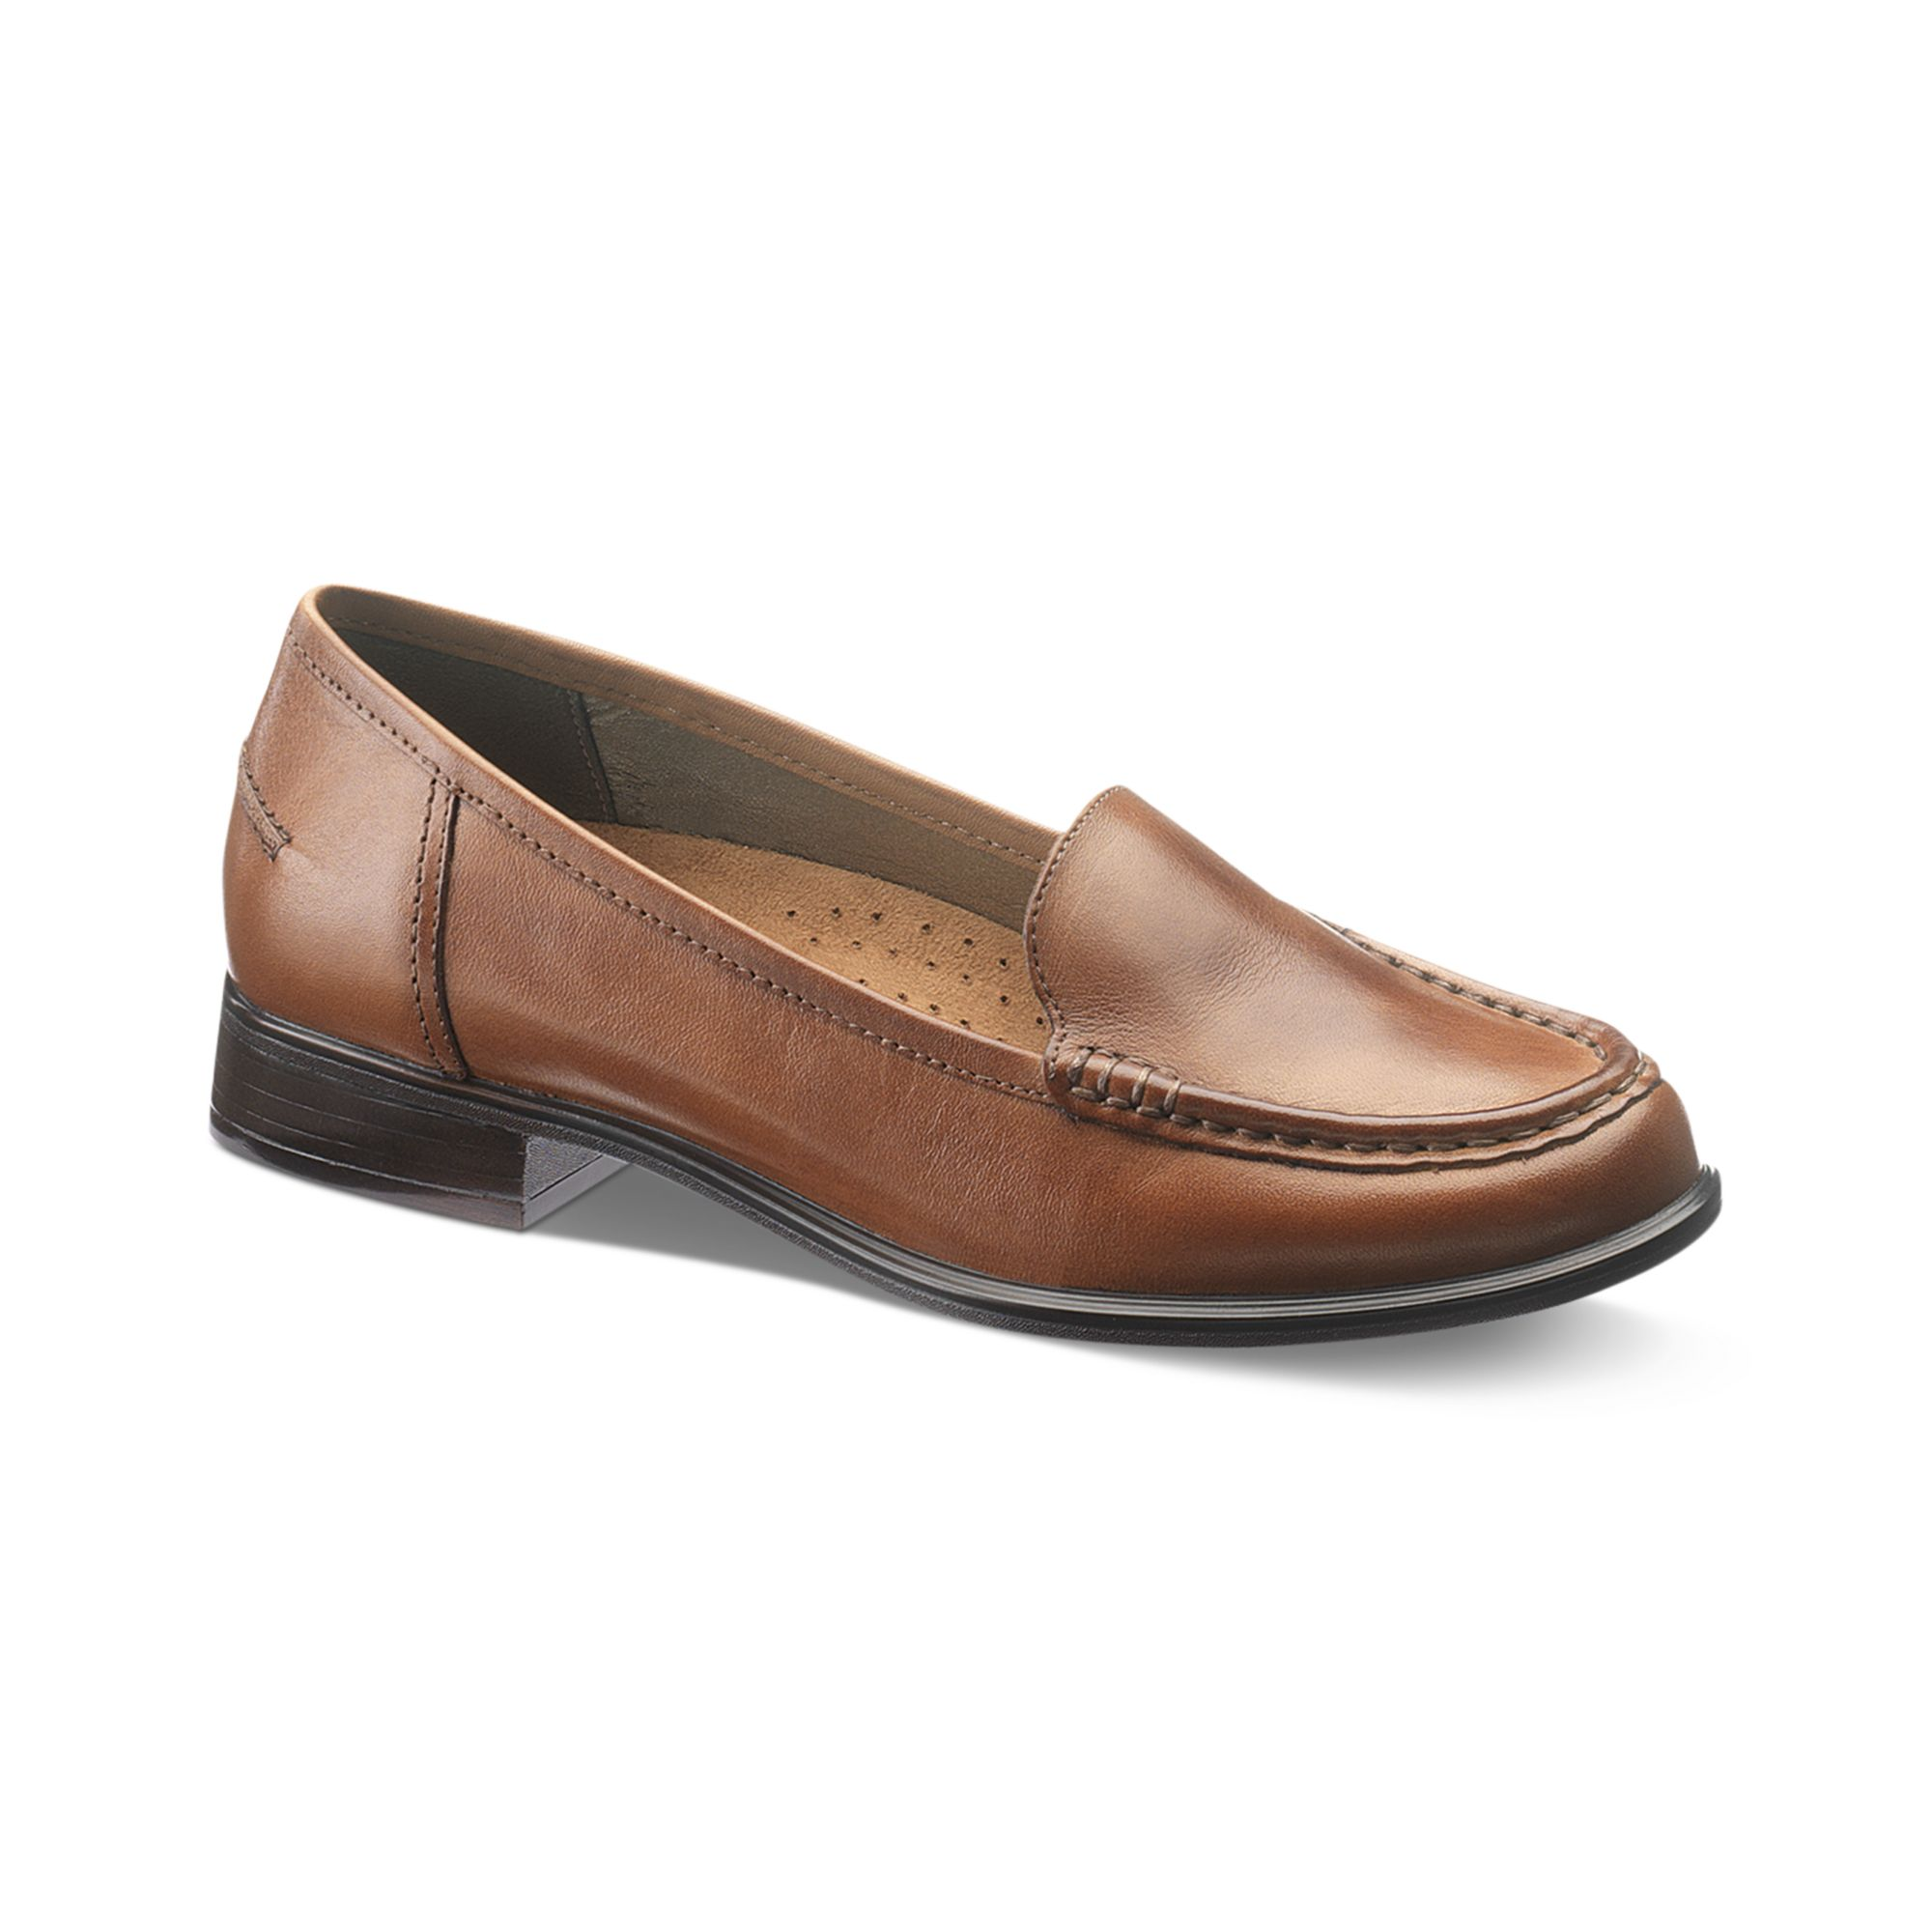 da16dacf066 Lyst - Hush Puppies Blondelle Loafer Flats in Brown